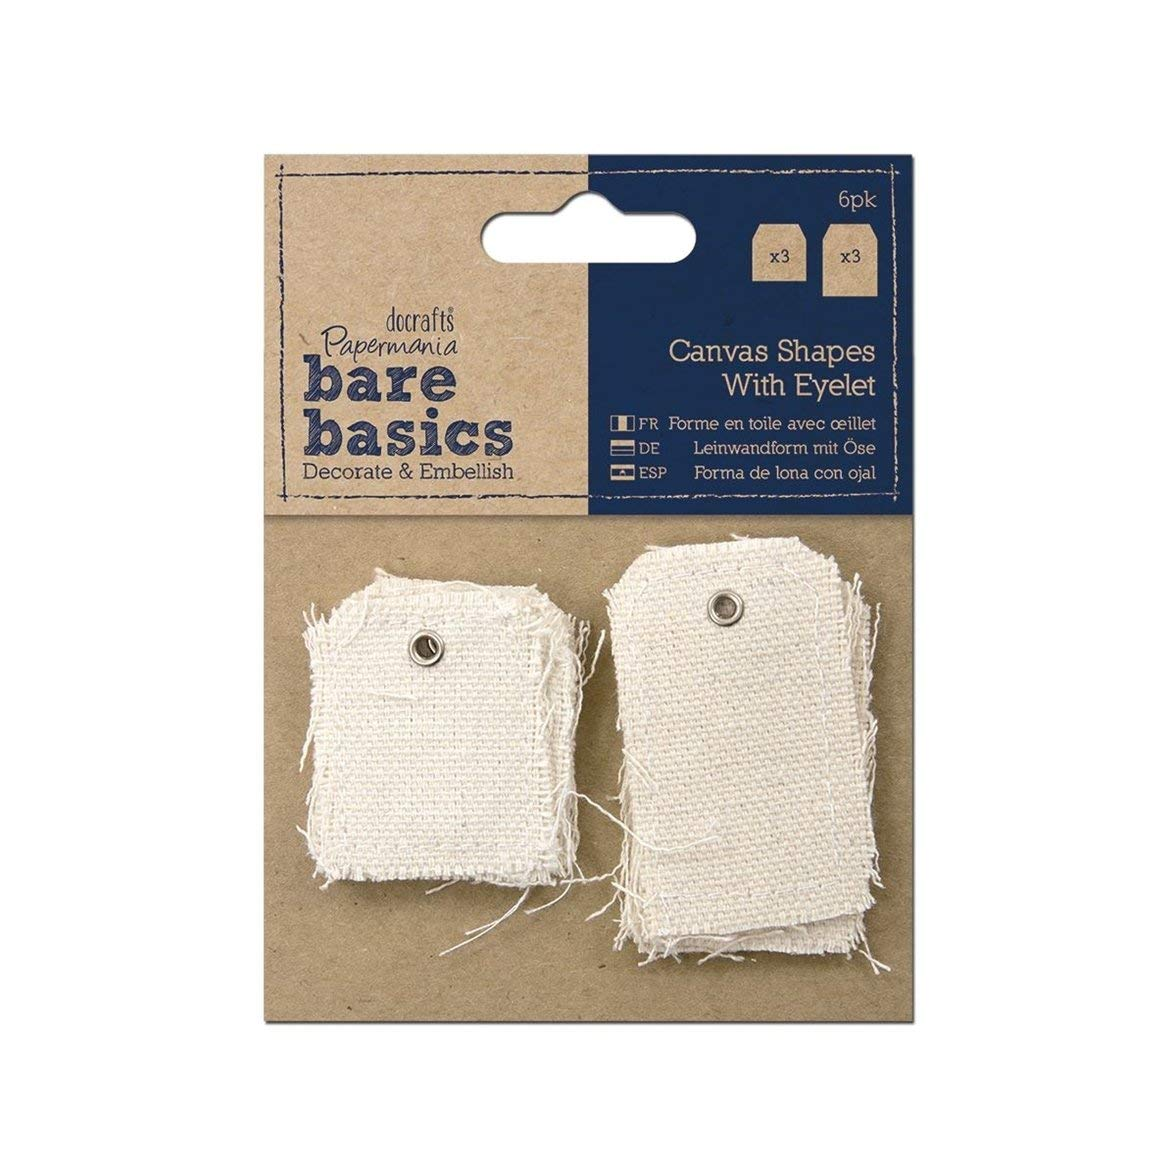 docrafts Papermania Bare Basics Canvas Shapes with Eyelet, Small and Large Tag, 6-Pack